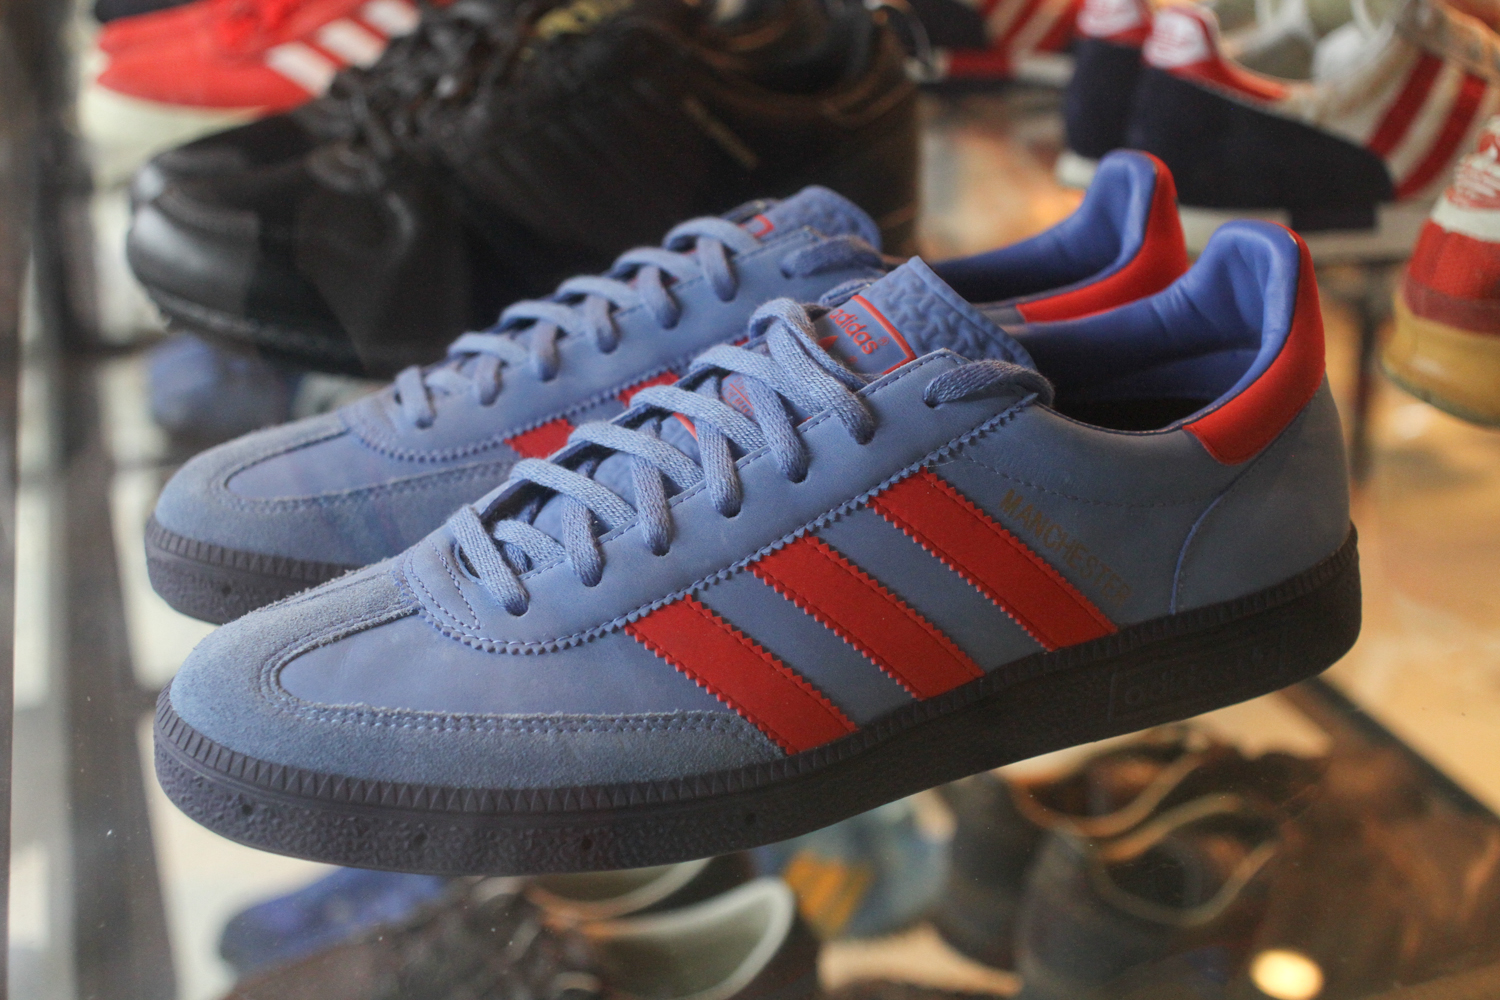 Adidas Red Hot Chili Peppers Shoes